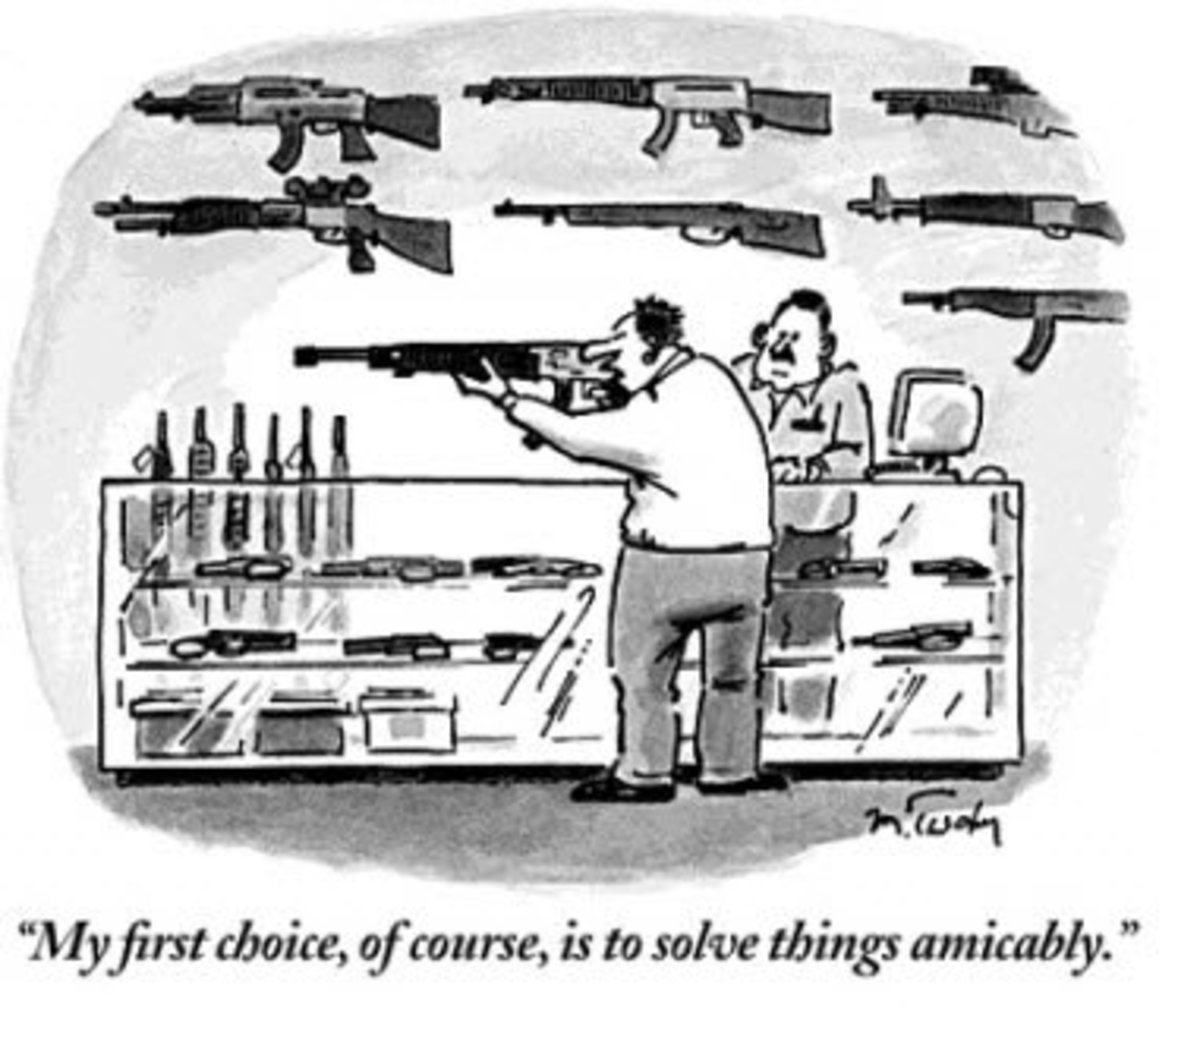 Gun Control and the 2nd Amendment